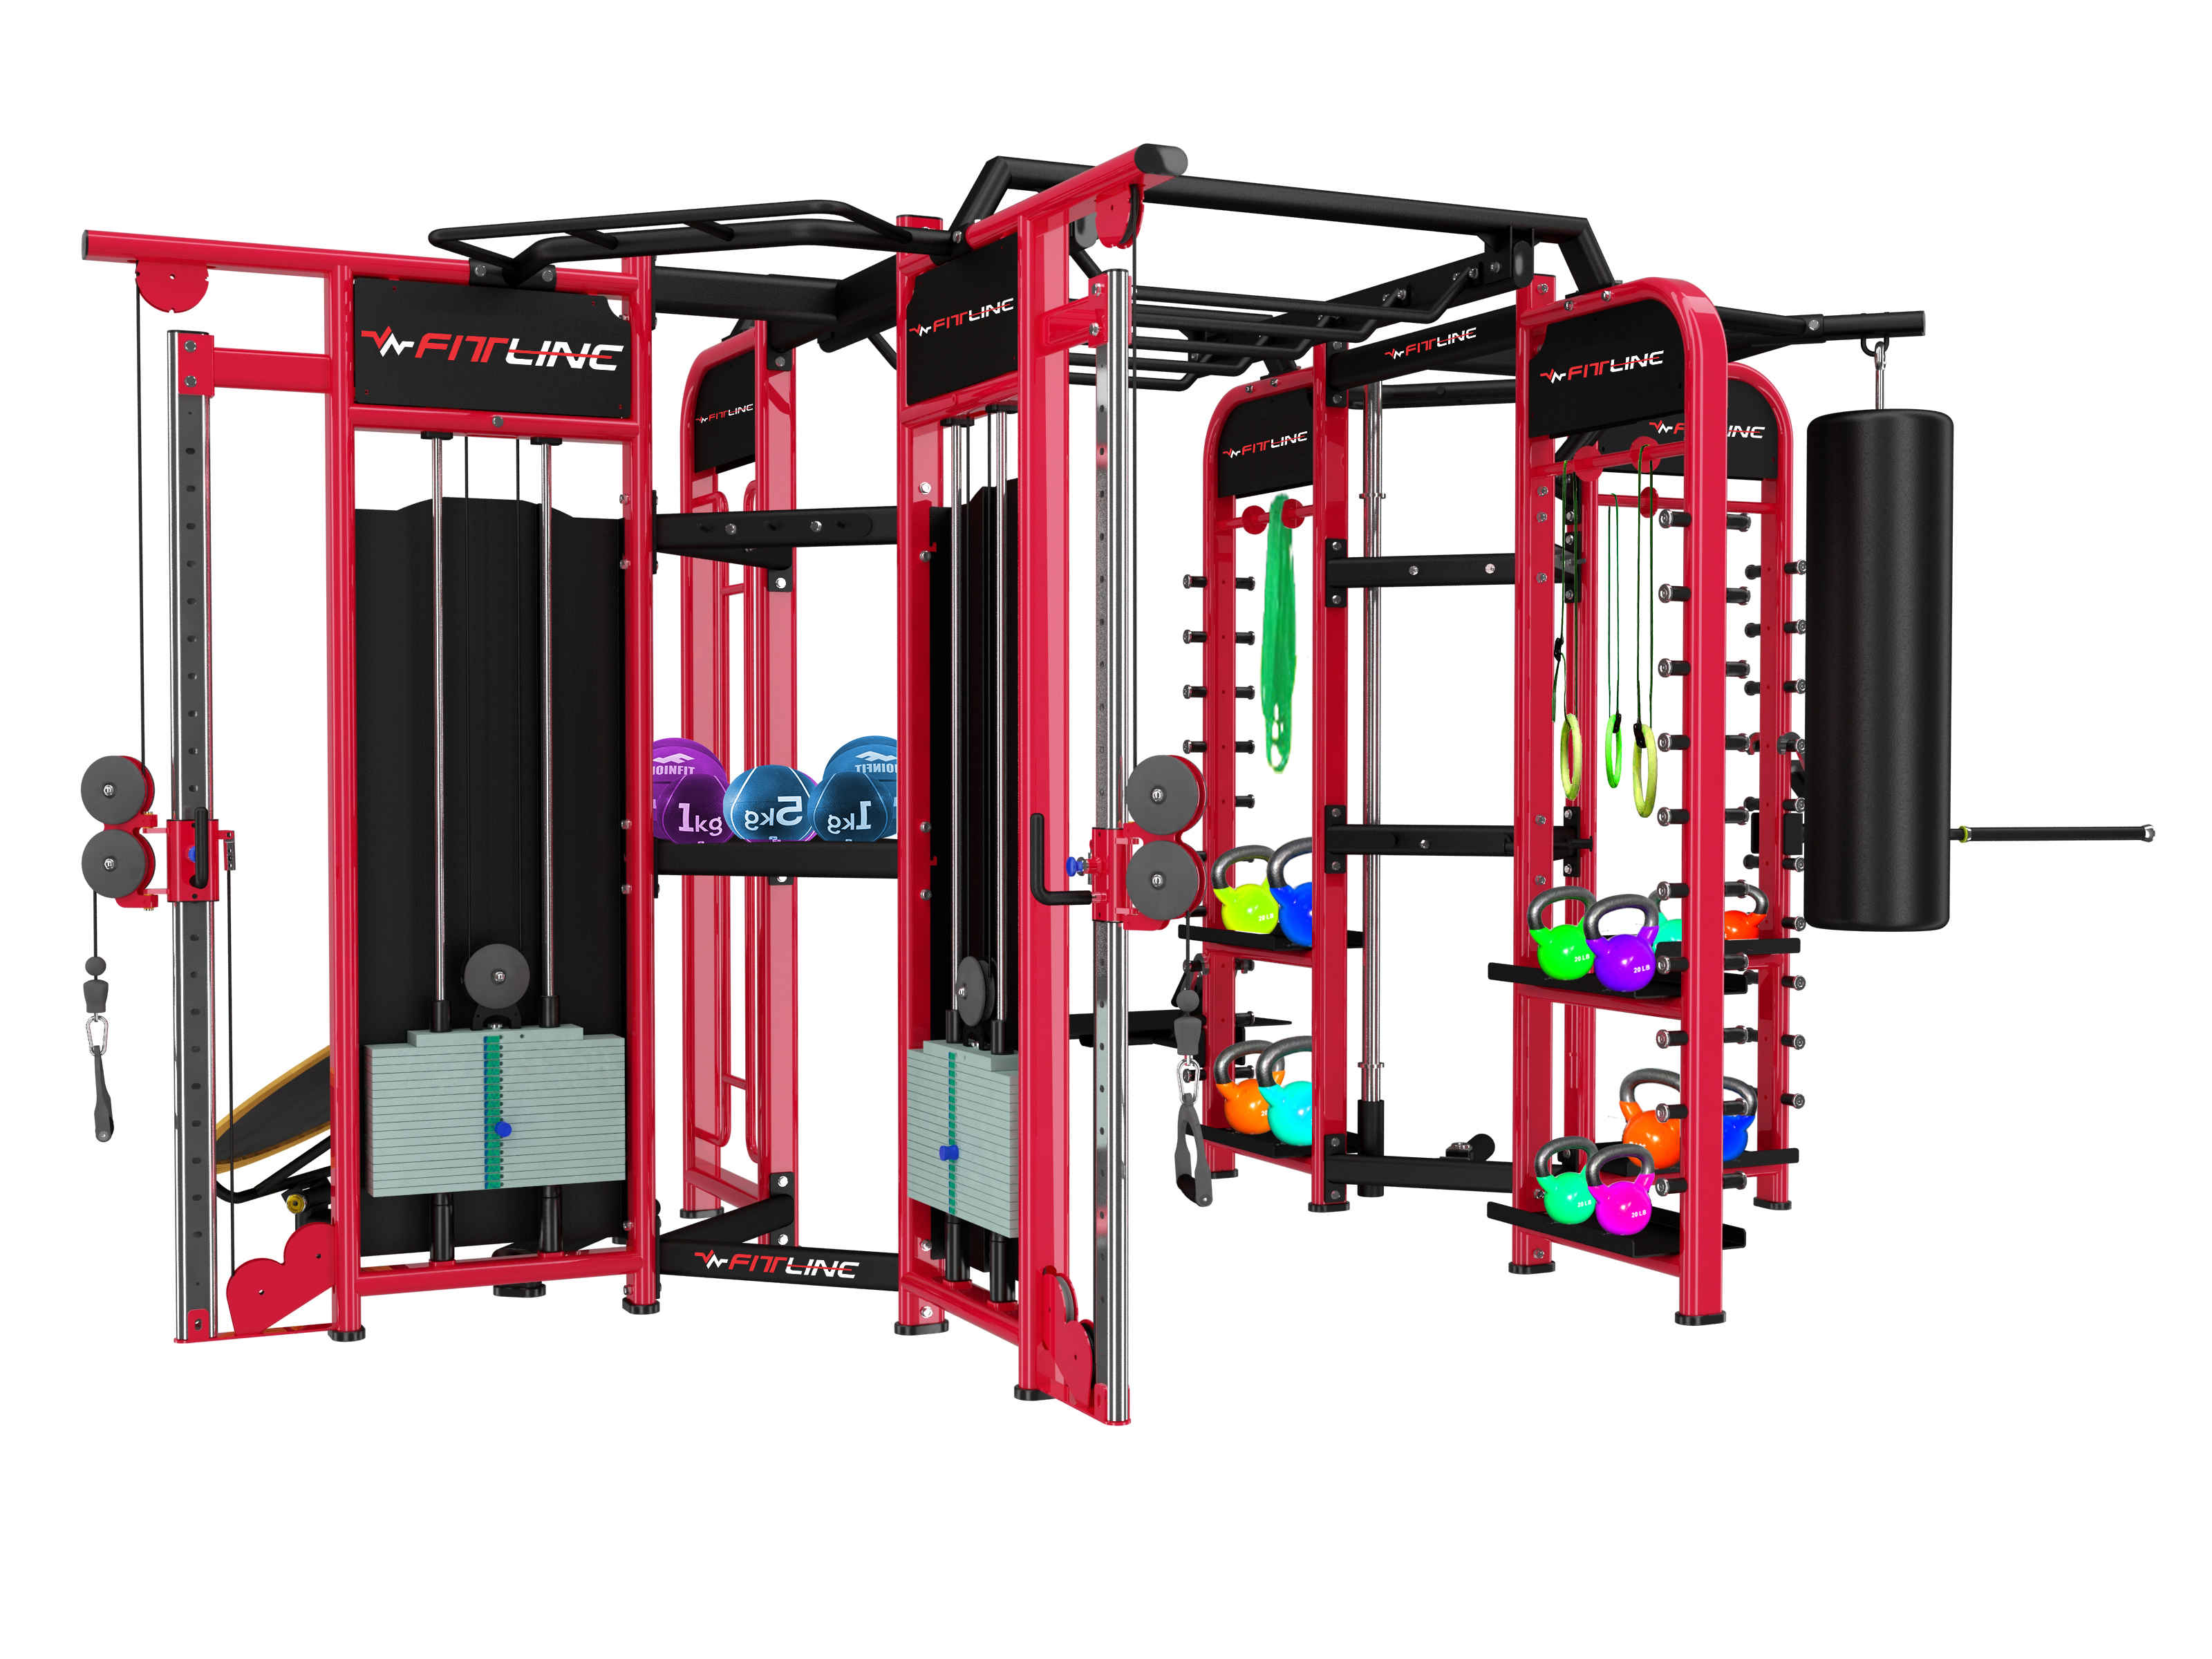 a06a6dd4e55 Latest crossfit equipment for gyms & fitness studios at affordable rates